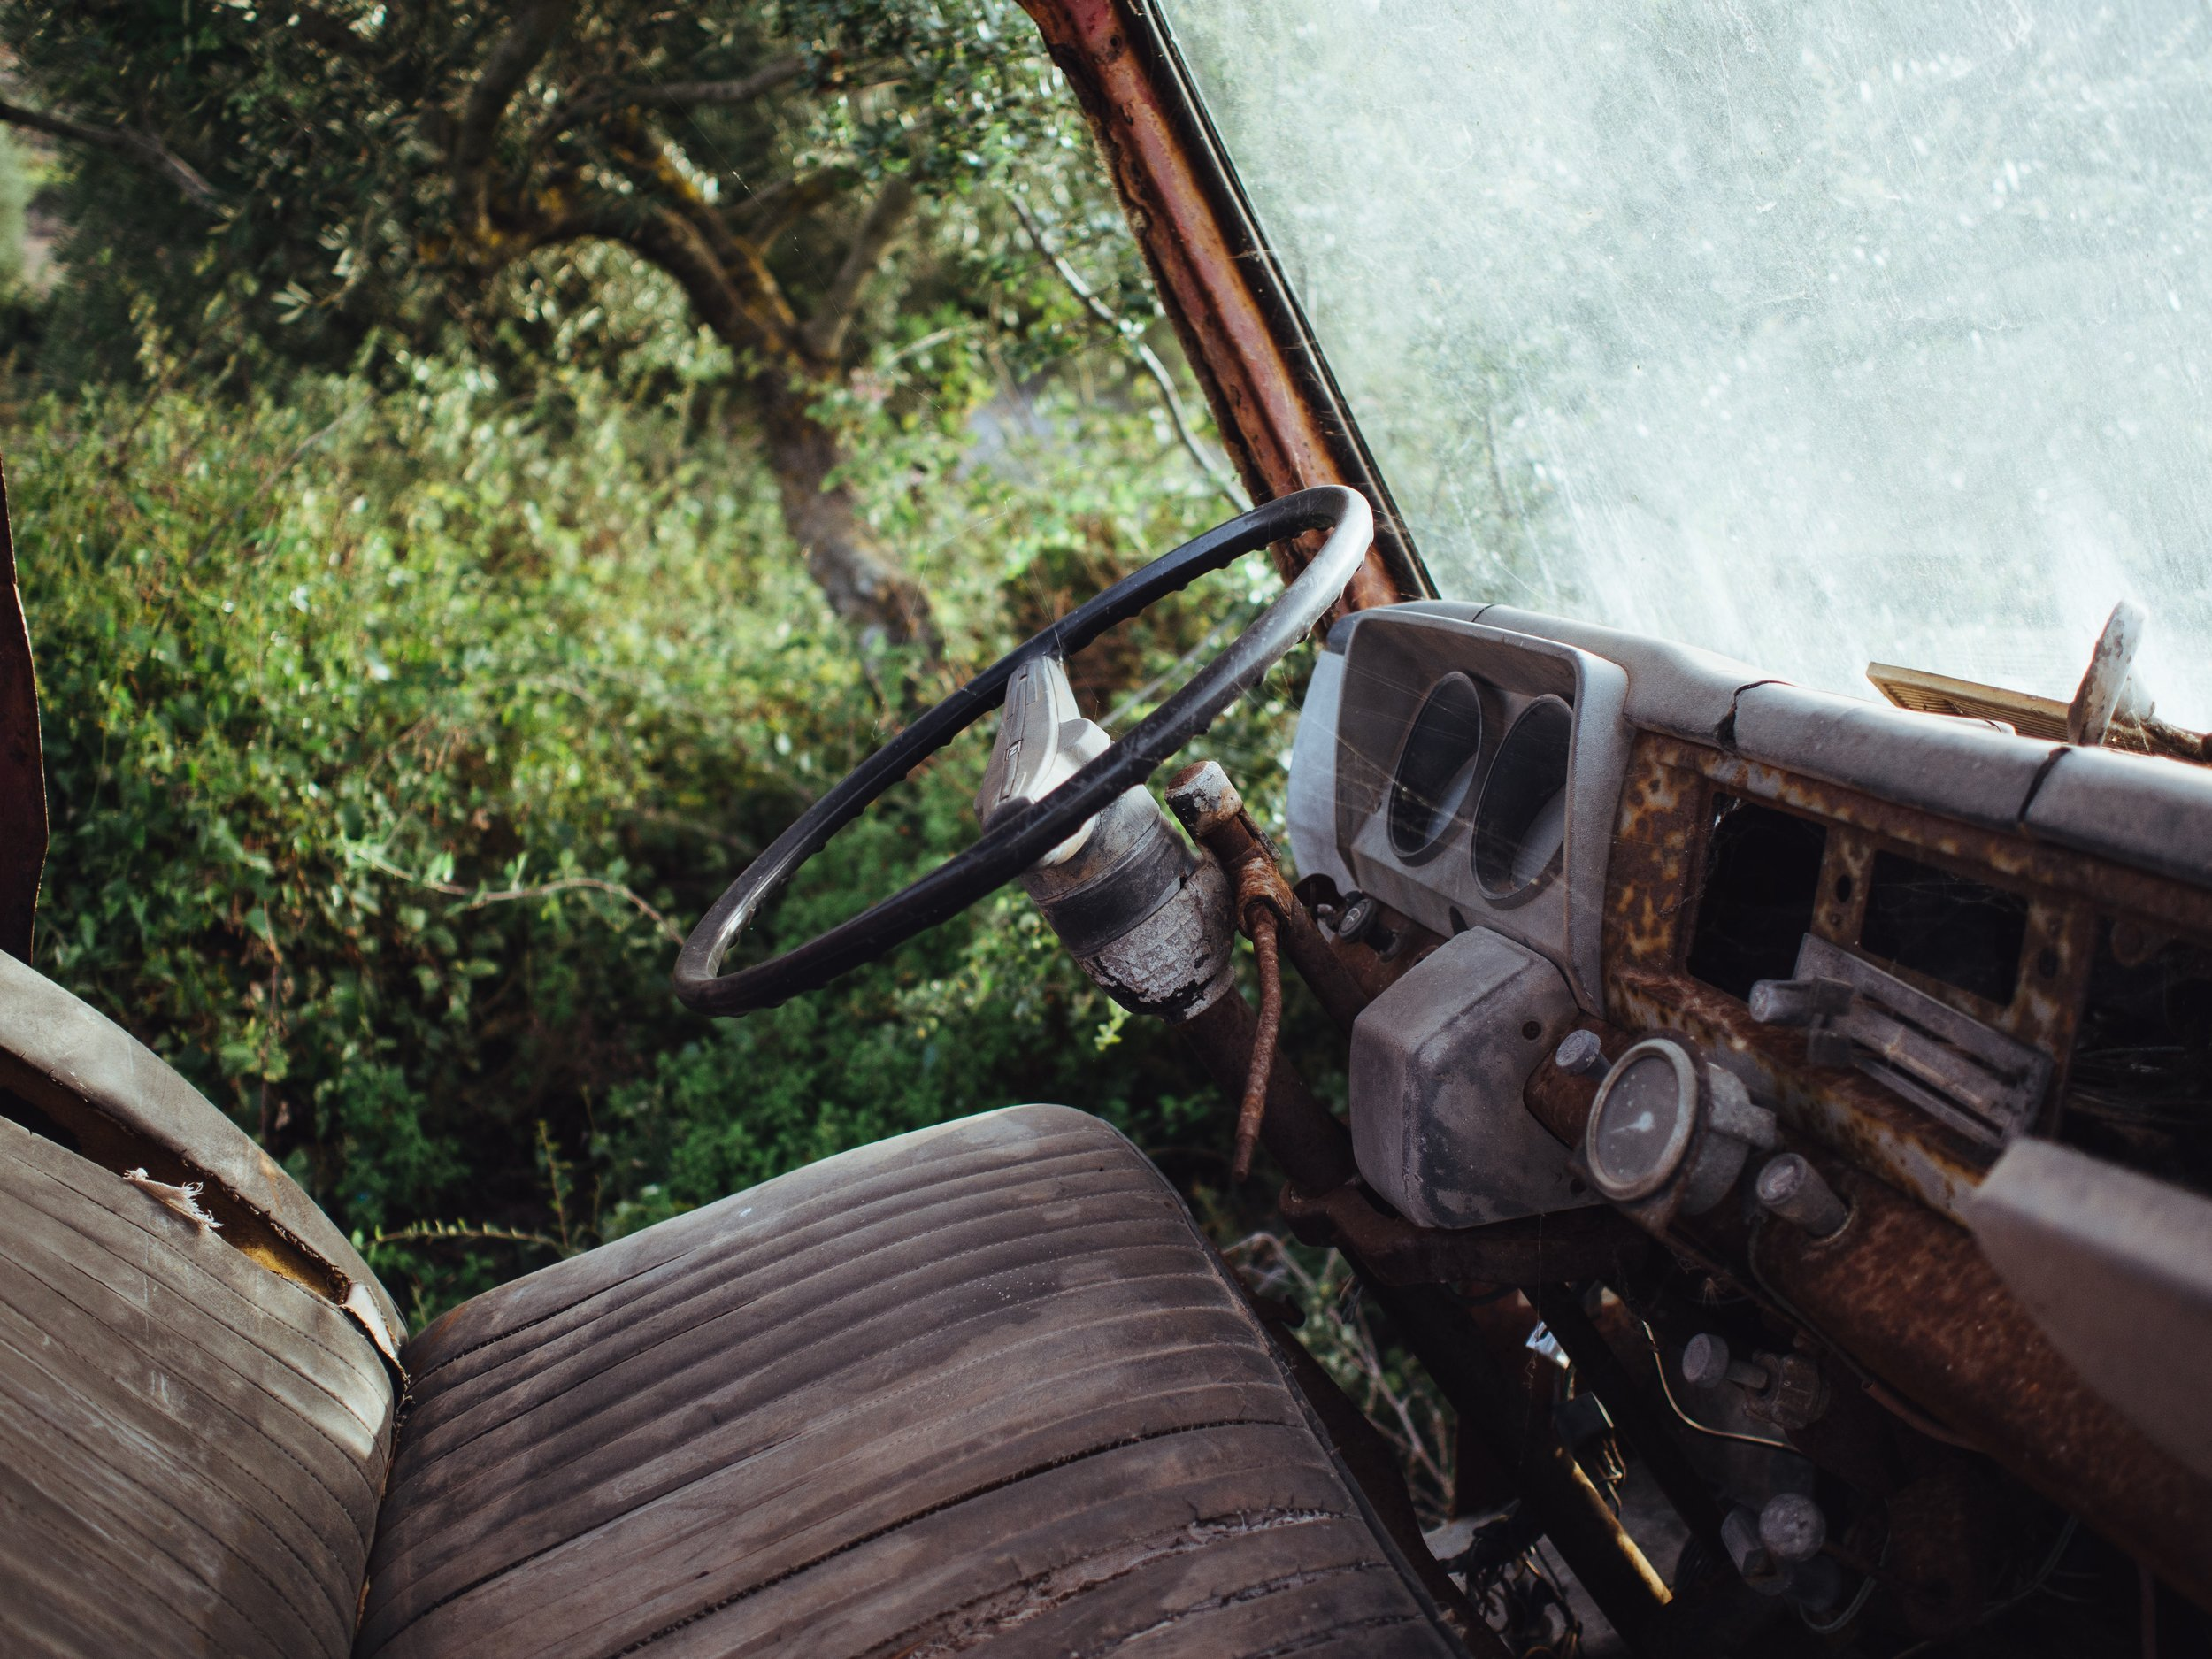 The driver's seat of an abandoned truck, with cobwebs and vines growing inside.